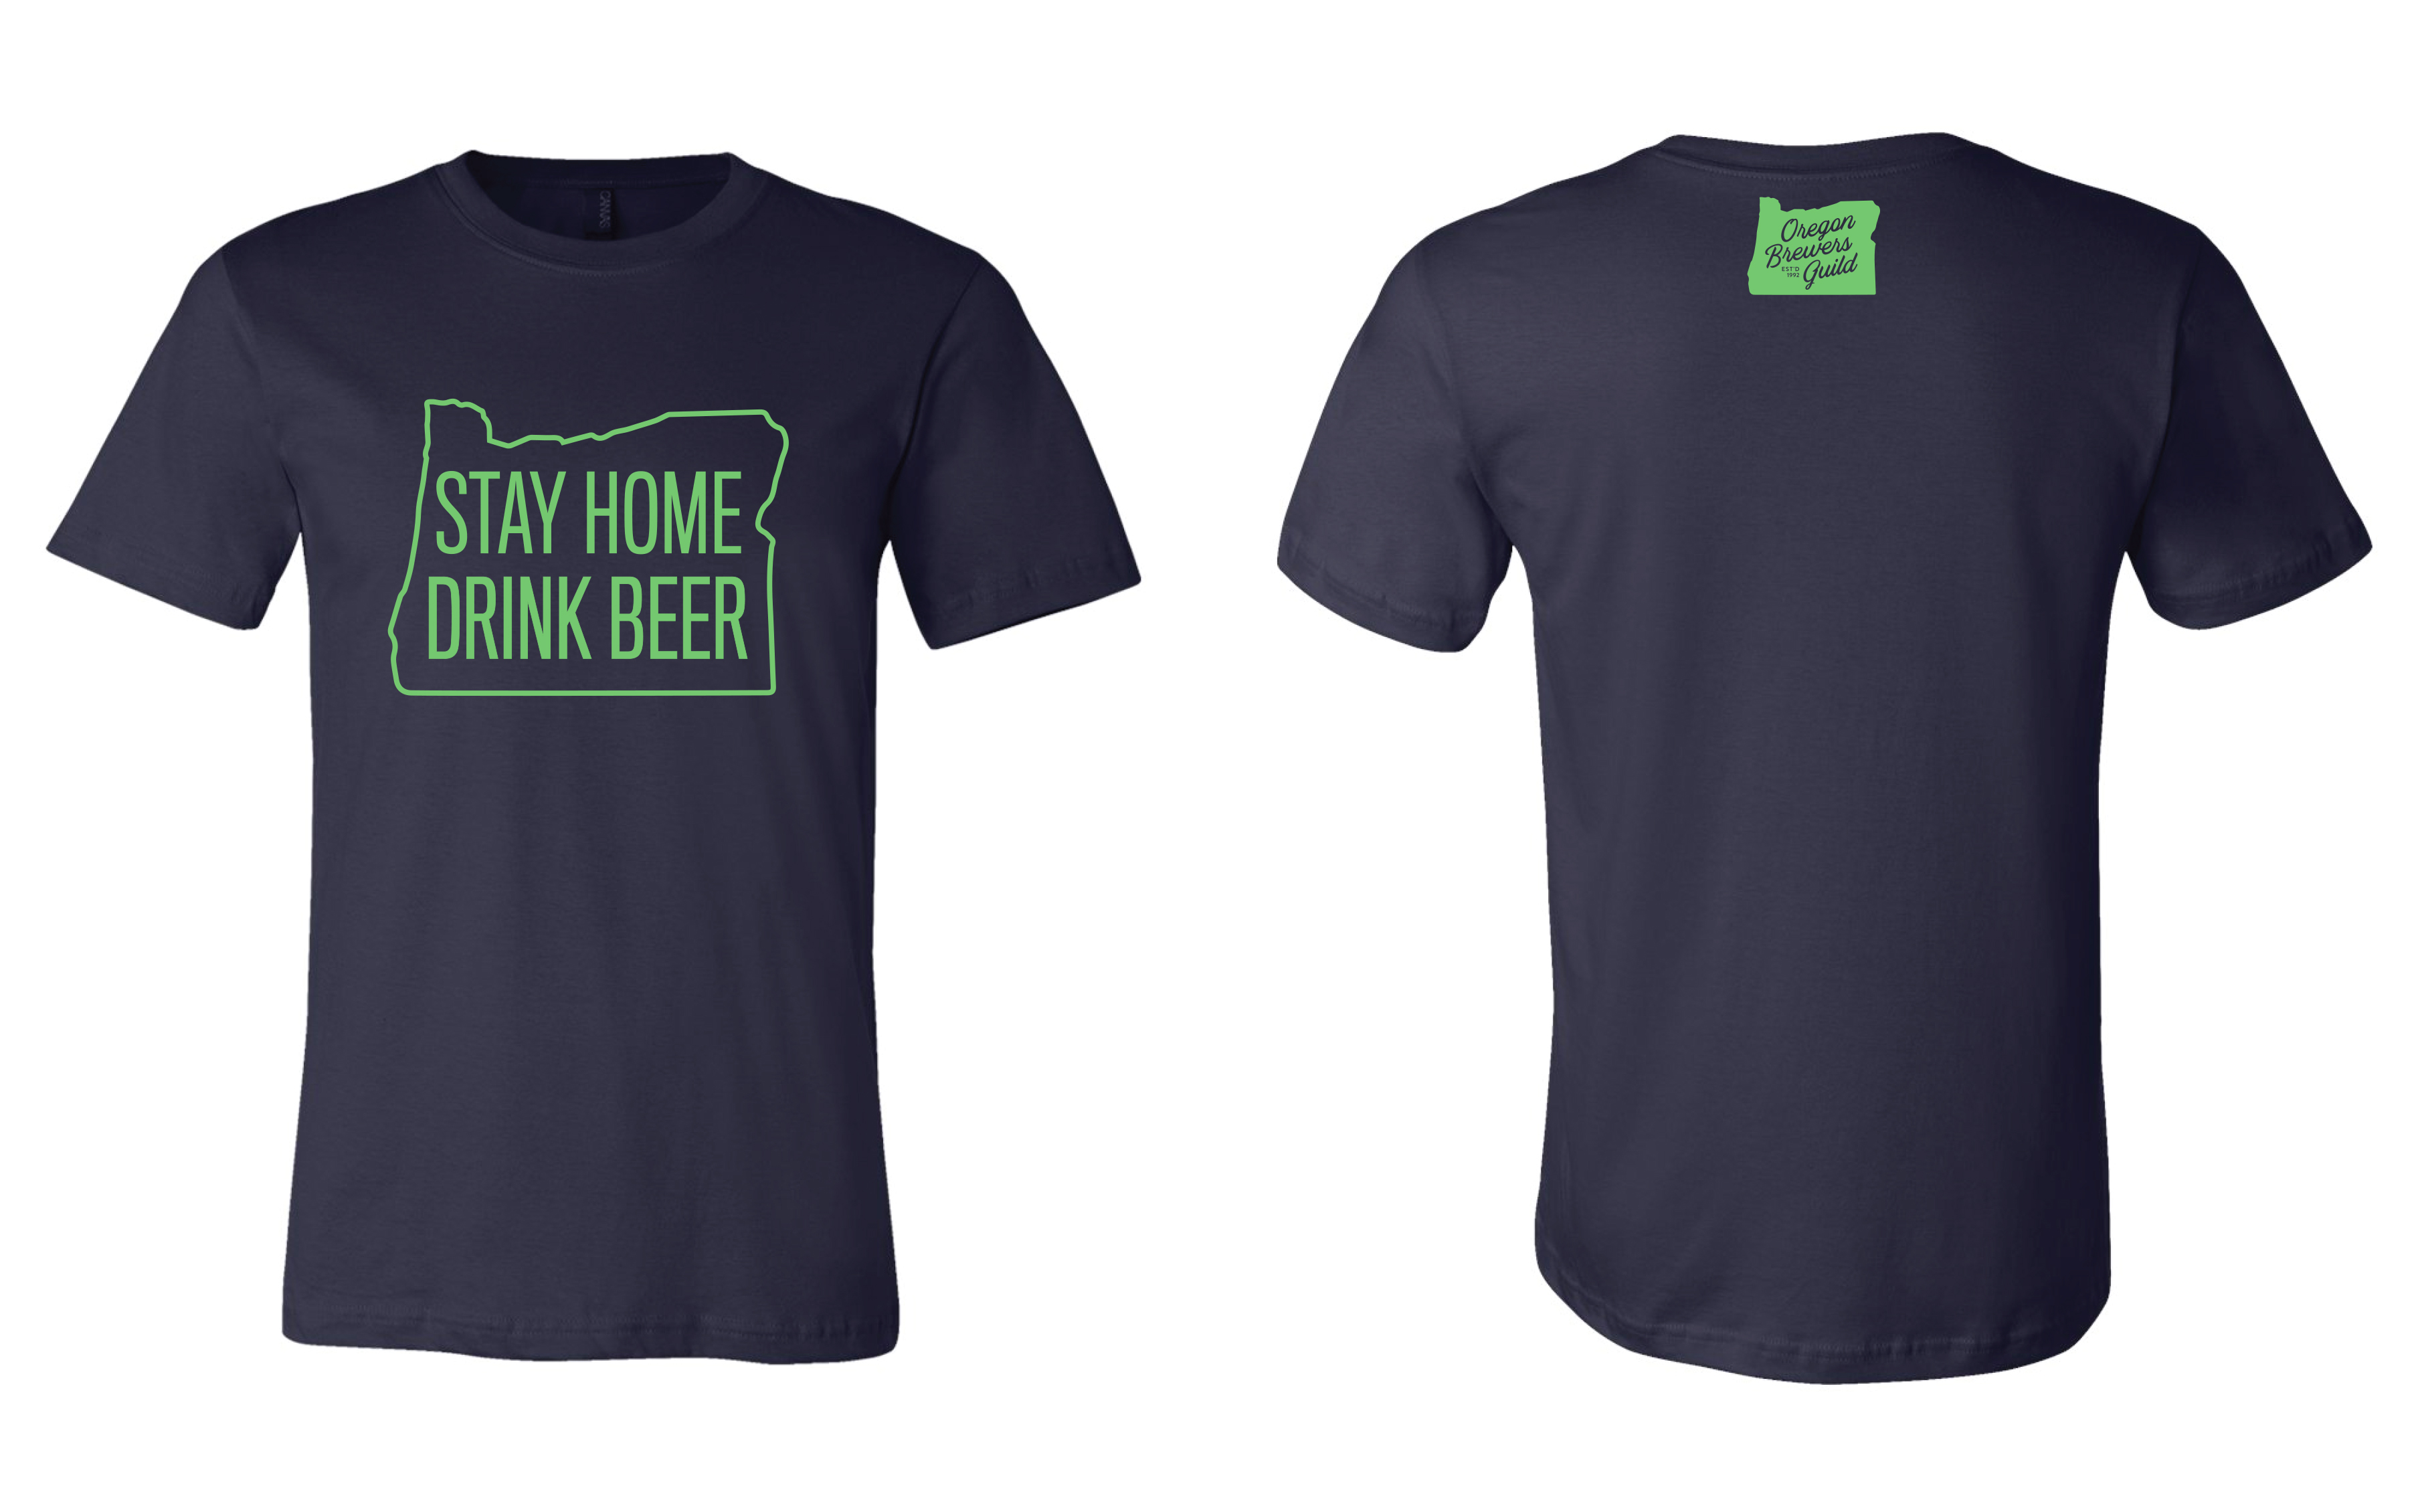 Stay Home Drink Beer Shirt that benefits the Oregon Brewers Guild